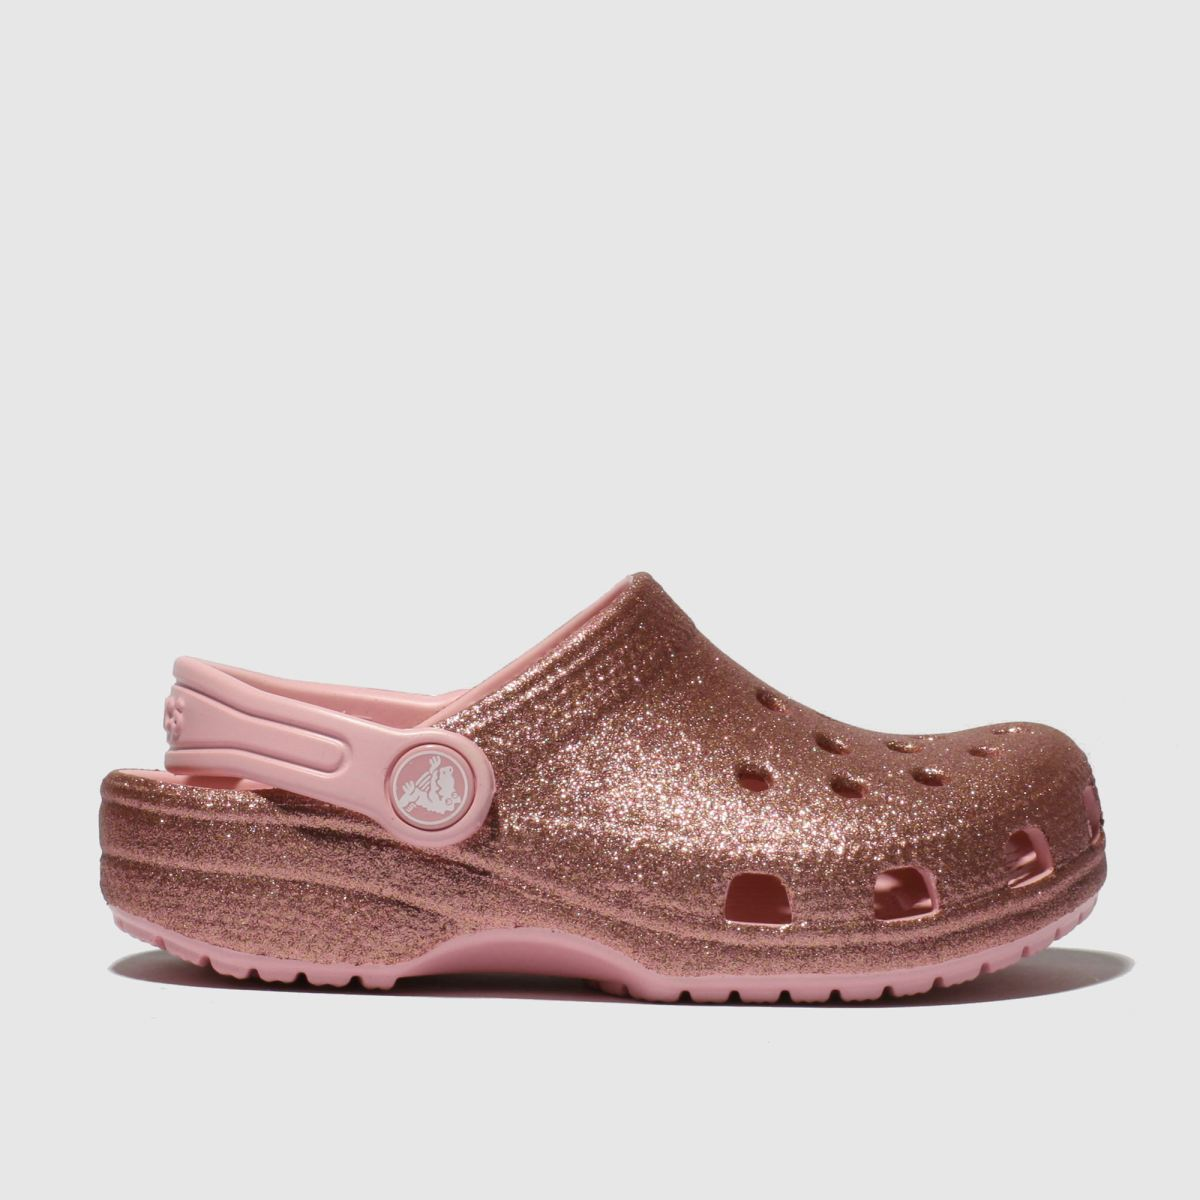 Crocs Pink Classic Glitter Clog Sandals Junior